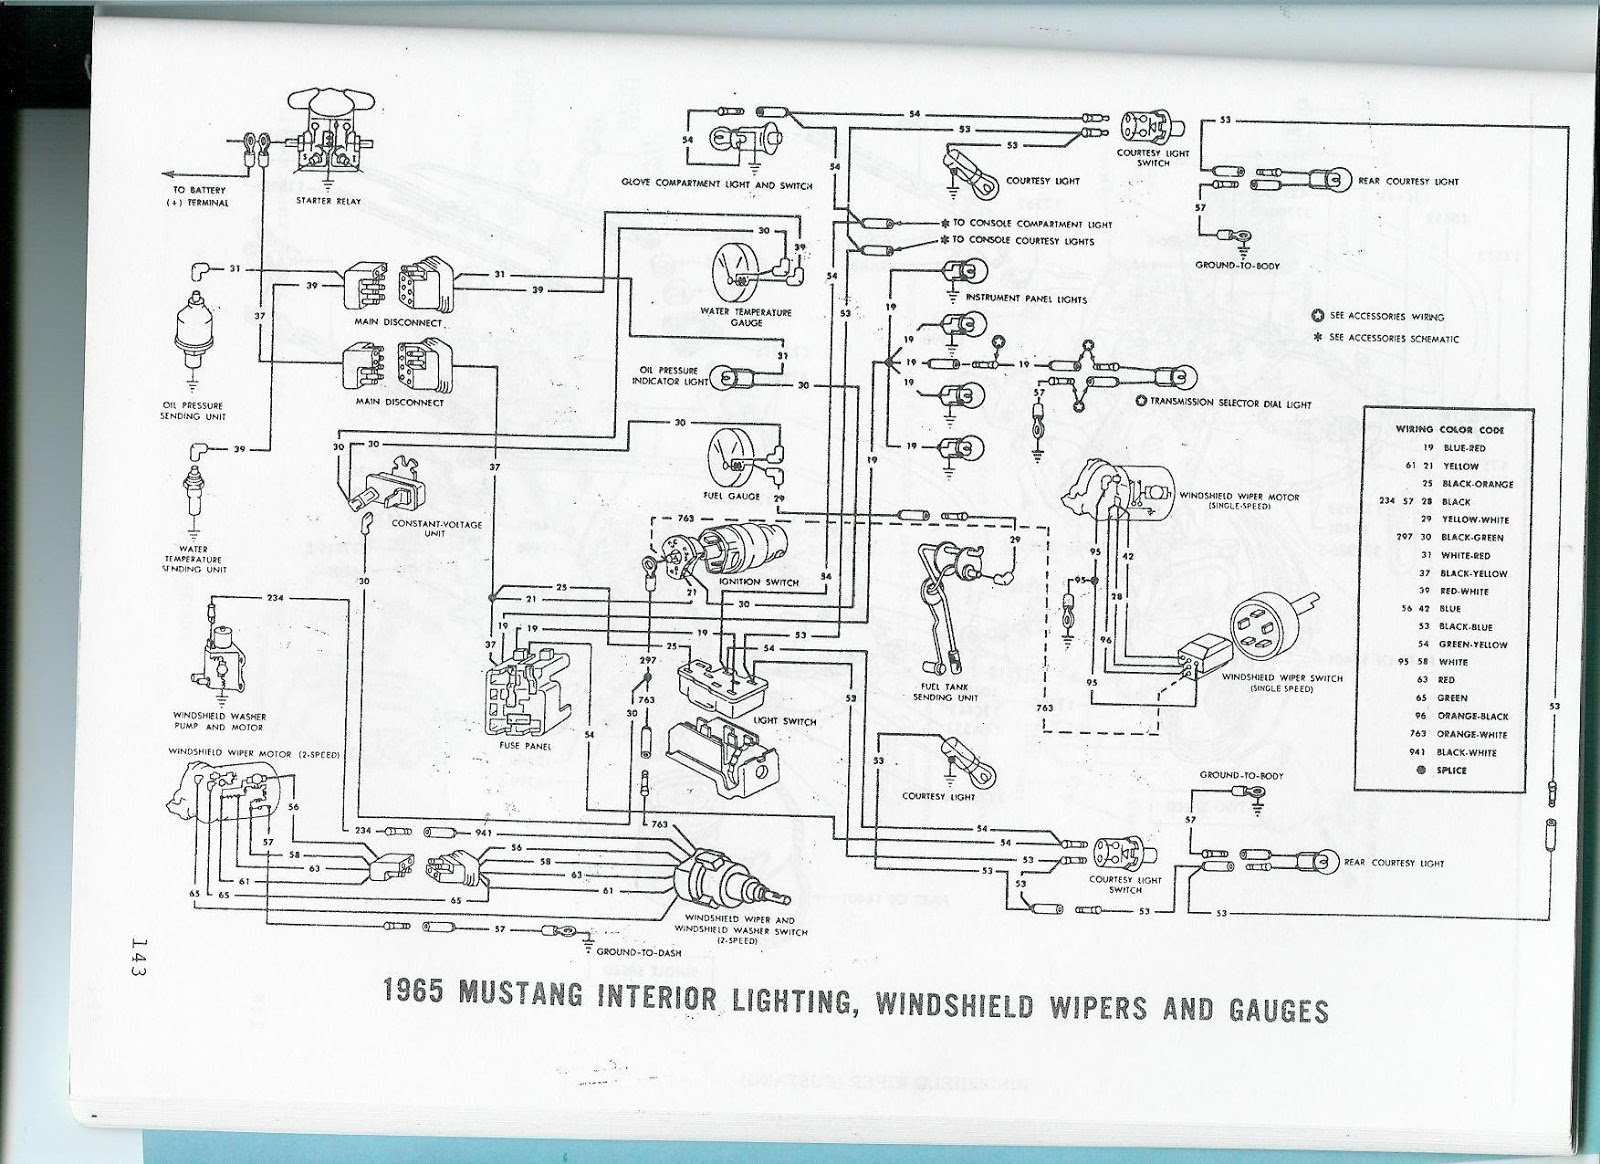 Amp Gauge Wiring Diagram 1968 Chevy The Care And Feeding Of Ponies 1965 Mustang Wiring Diagrams